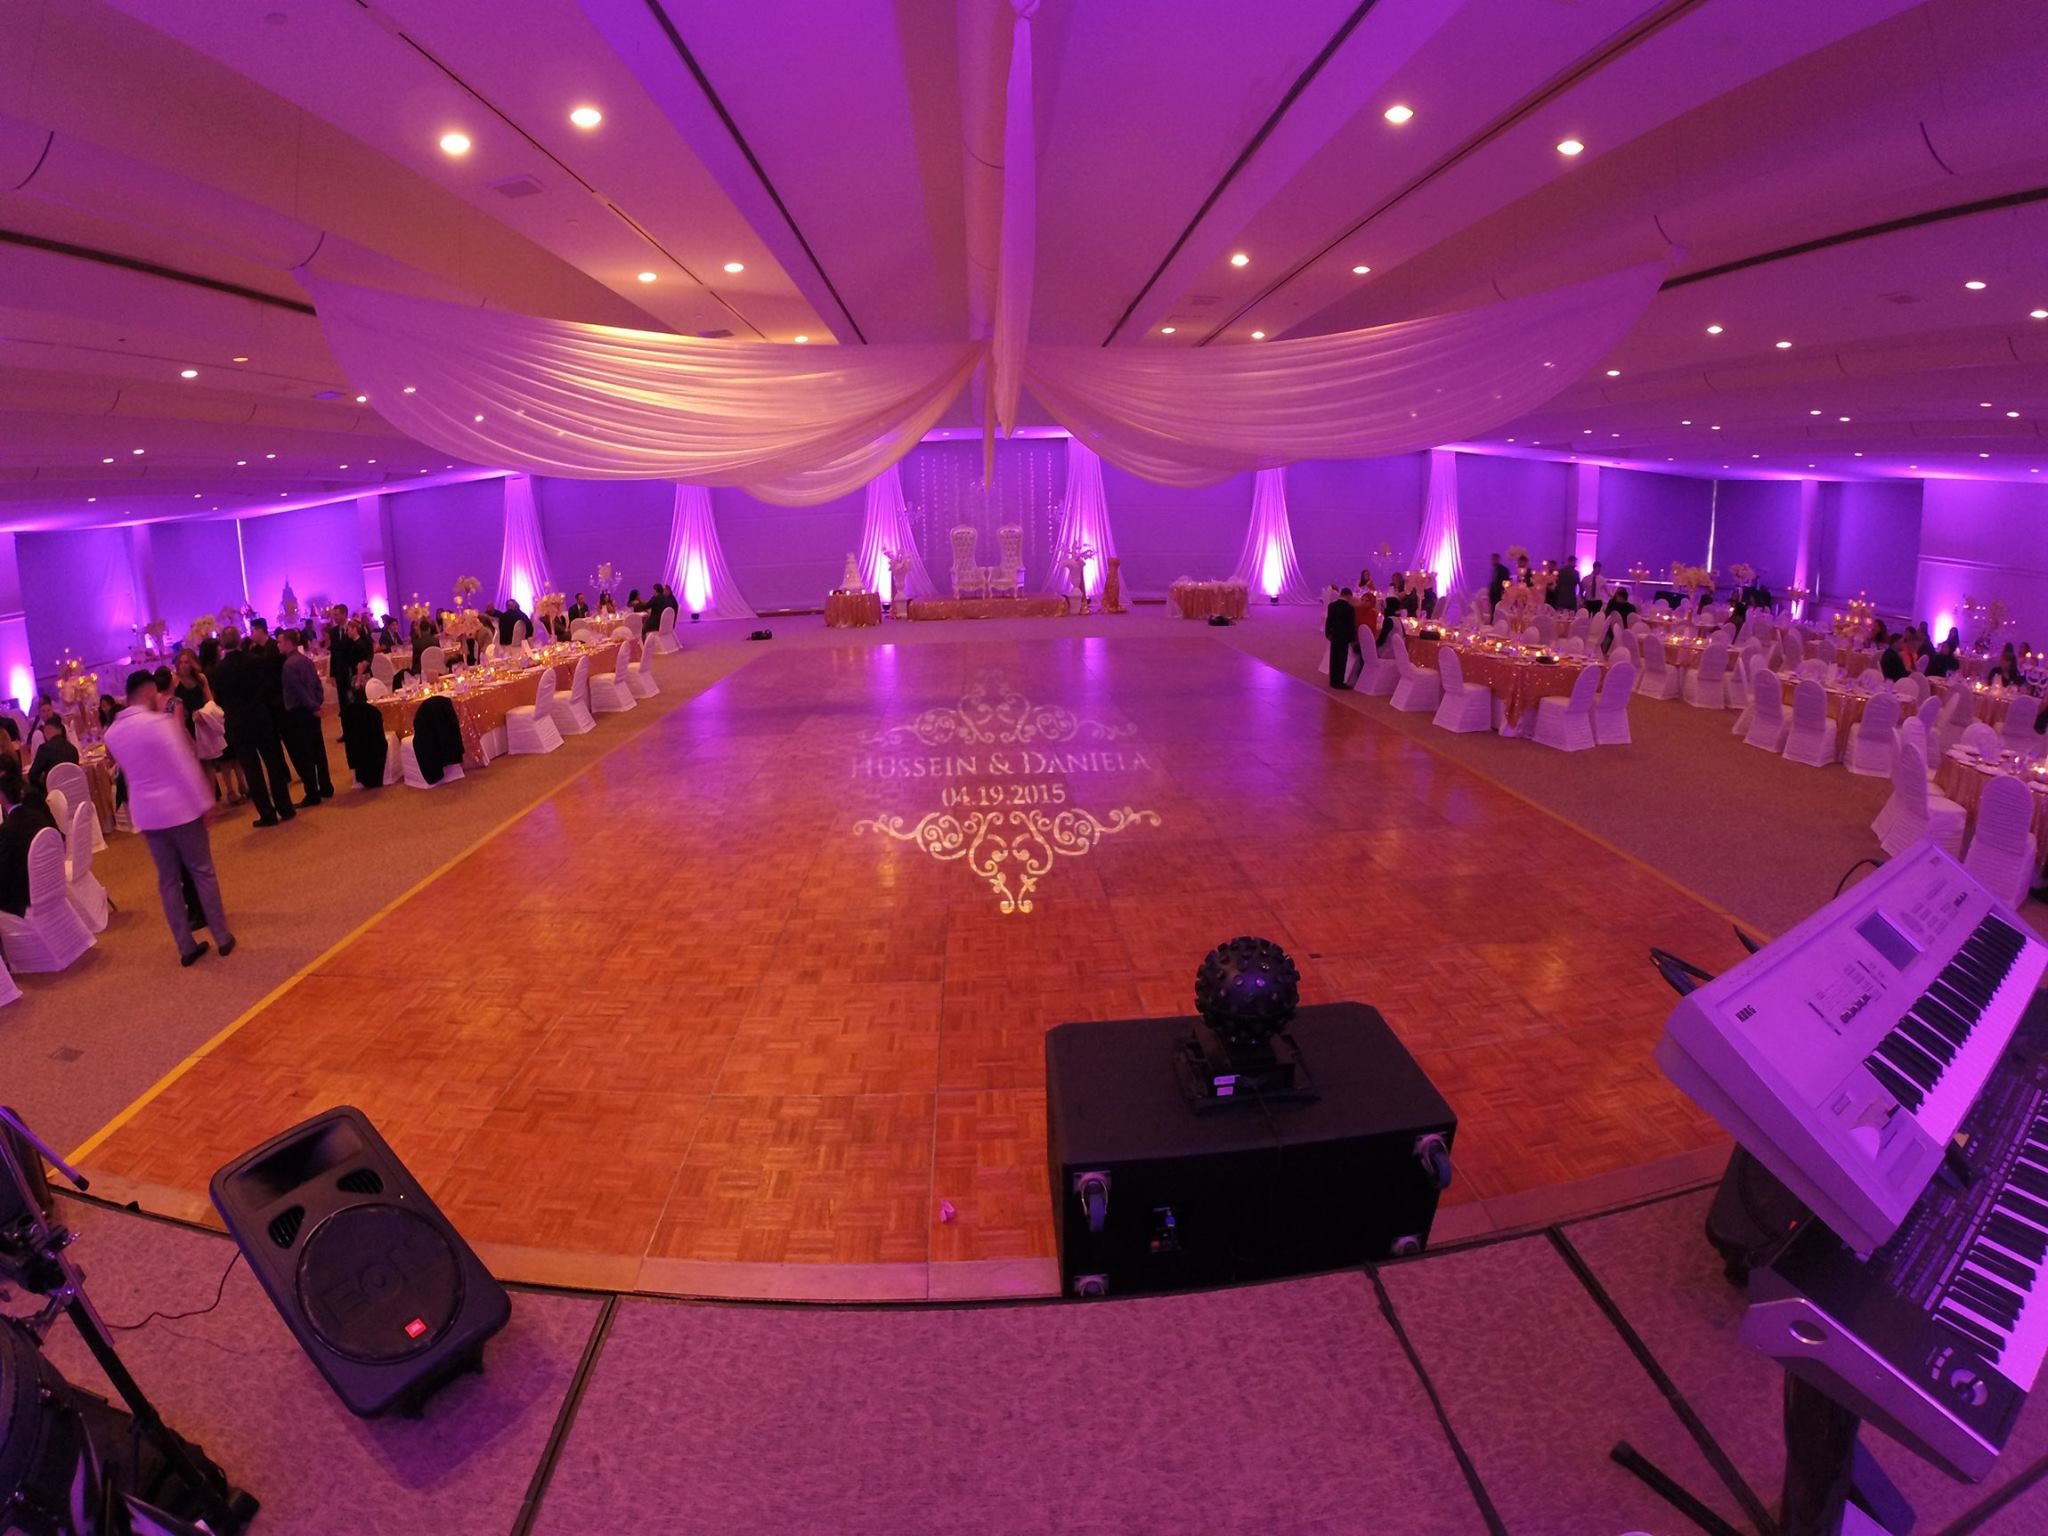 Custom Monogram & Uplighting